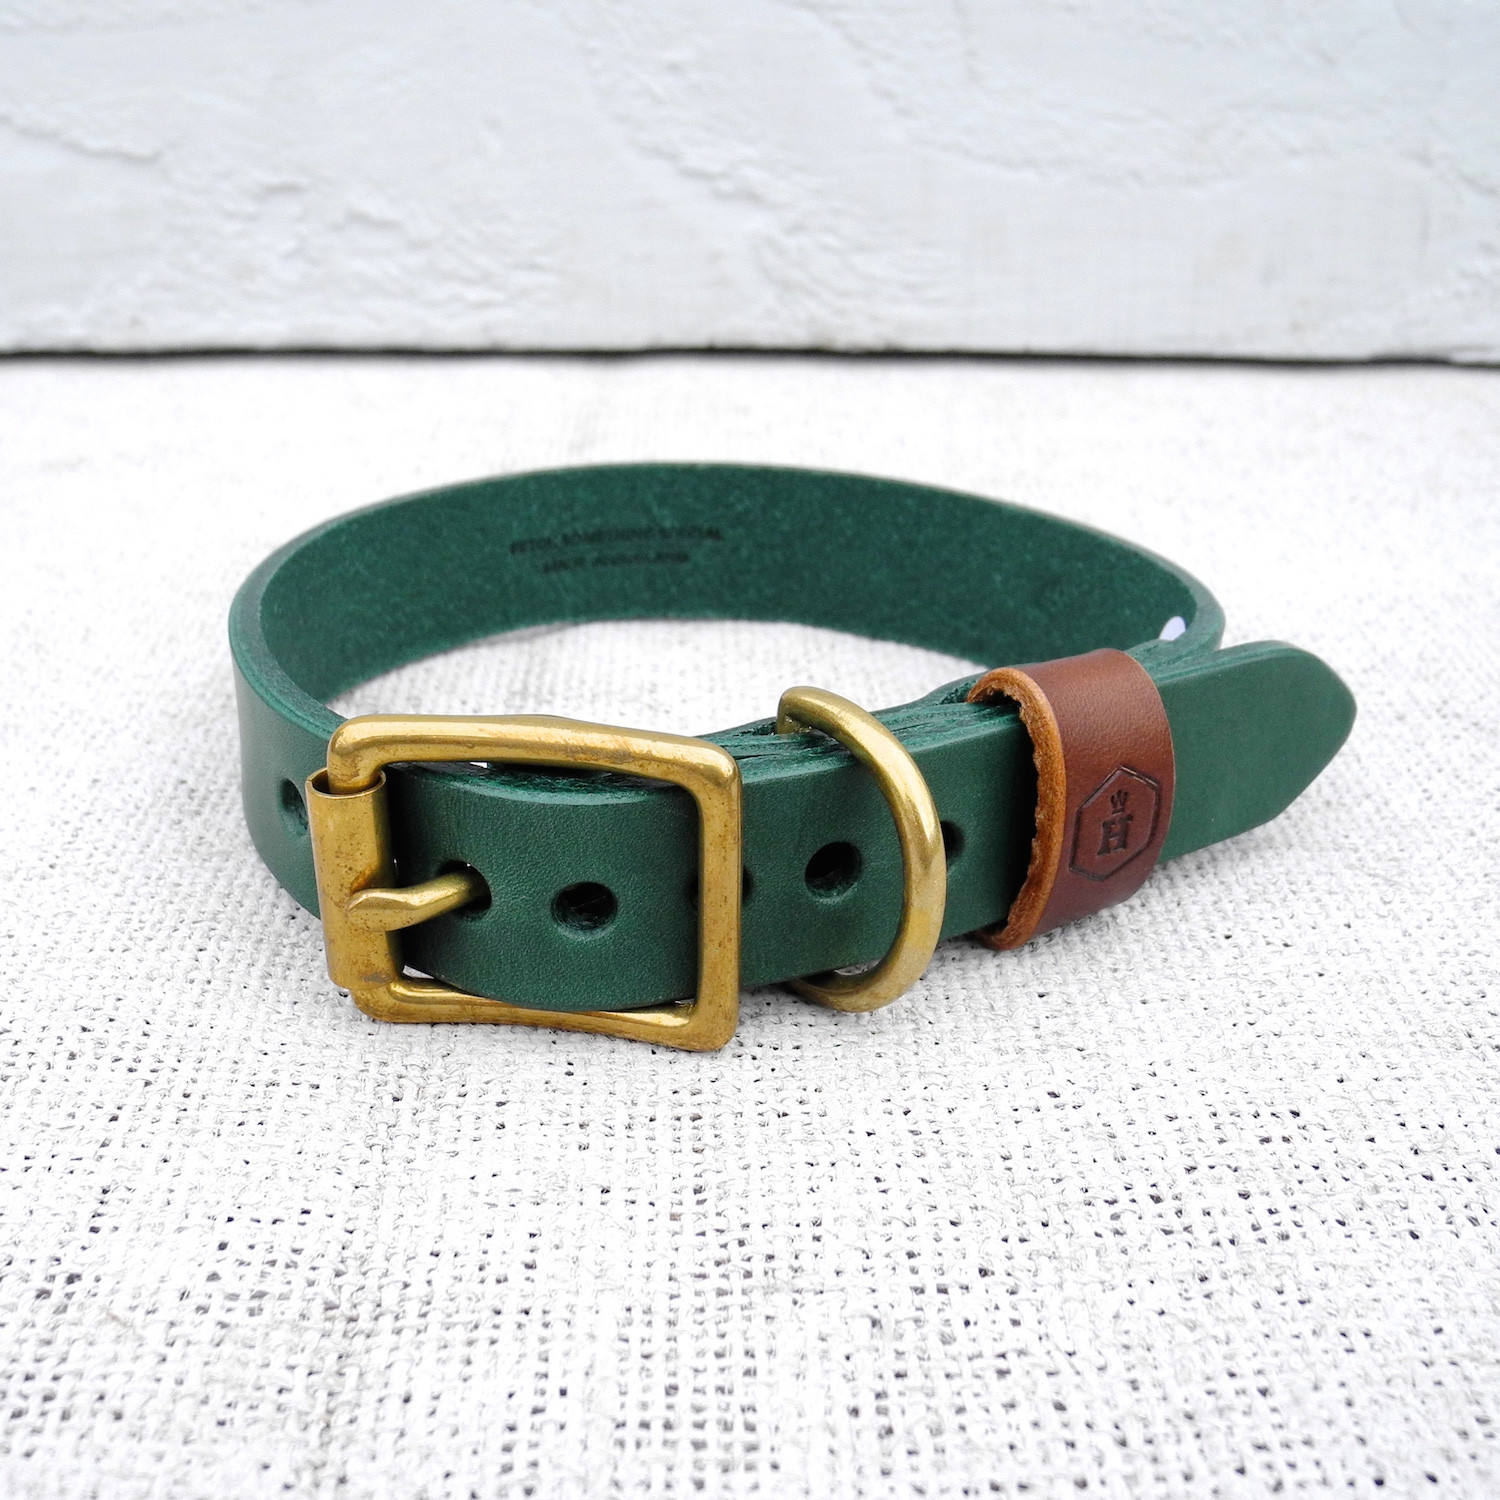 houndworthy  luxury dog accessories  touch of modern - leather dog collar  hunter green  chestnut (small)